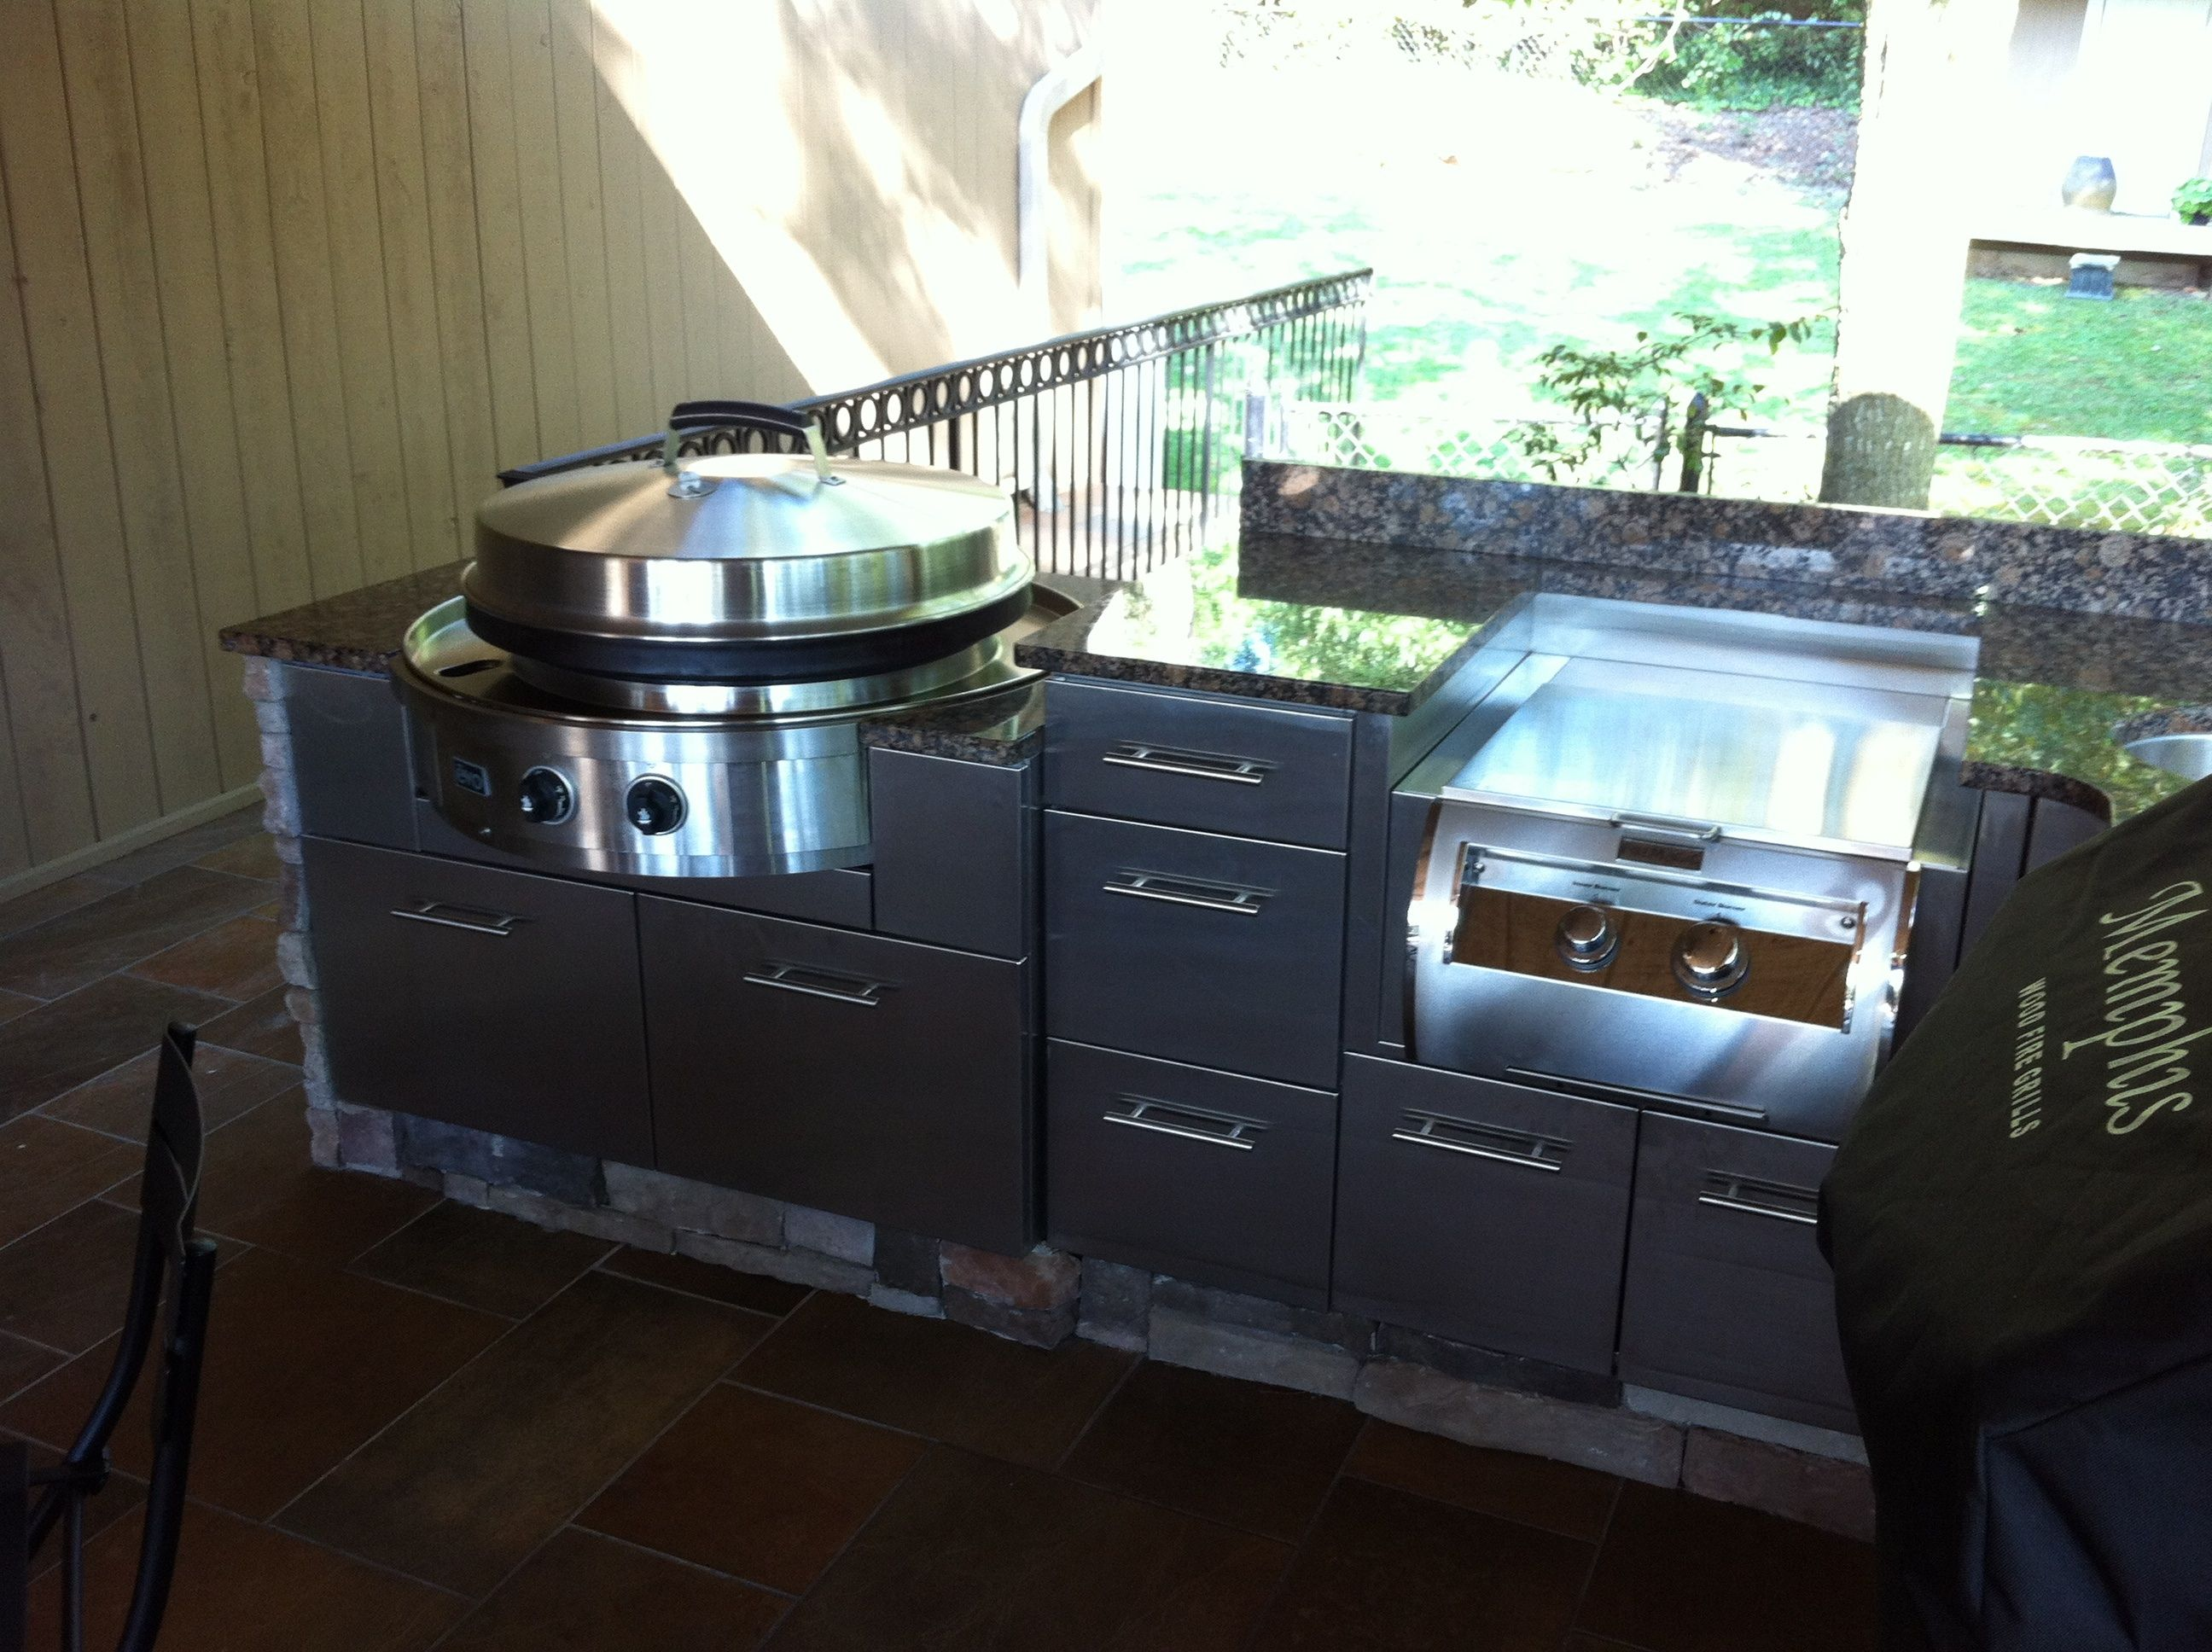 Best A Fireside Outdoor Kitchen Using The Evo 30G And The Power 640 x 480